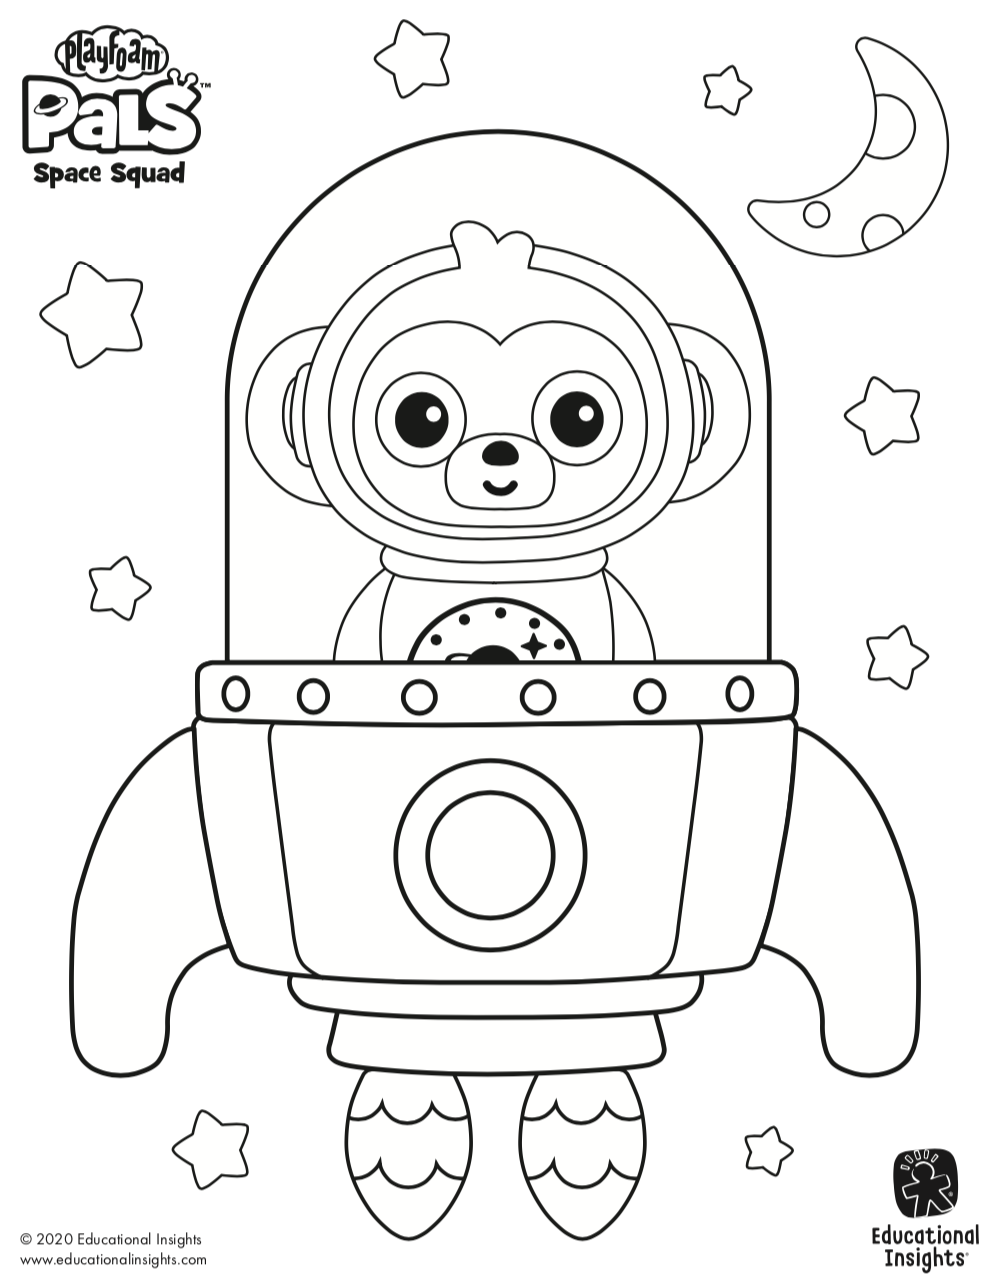 Free Downloads For Kids Printable Coloring Sheets Featuring Playfoam Pals Space Squad Cool Coloring Pages Free Printable Coloring Sheets Space Coloring Pages [ 1286 x 990 Pixel ]